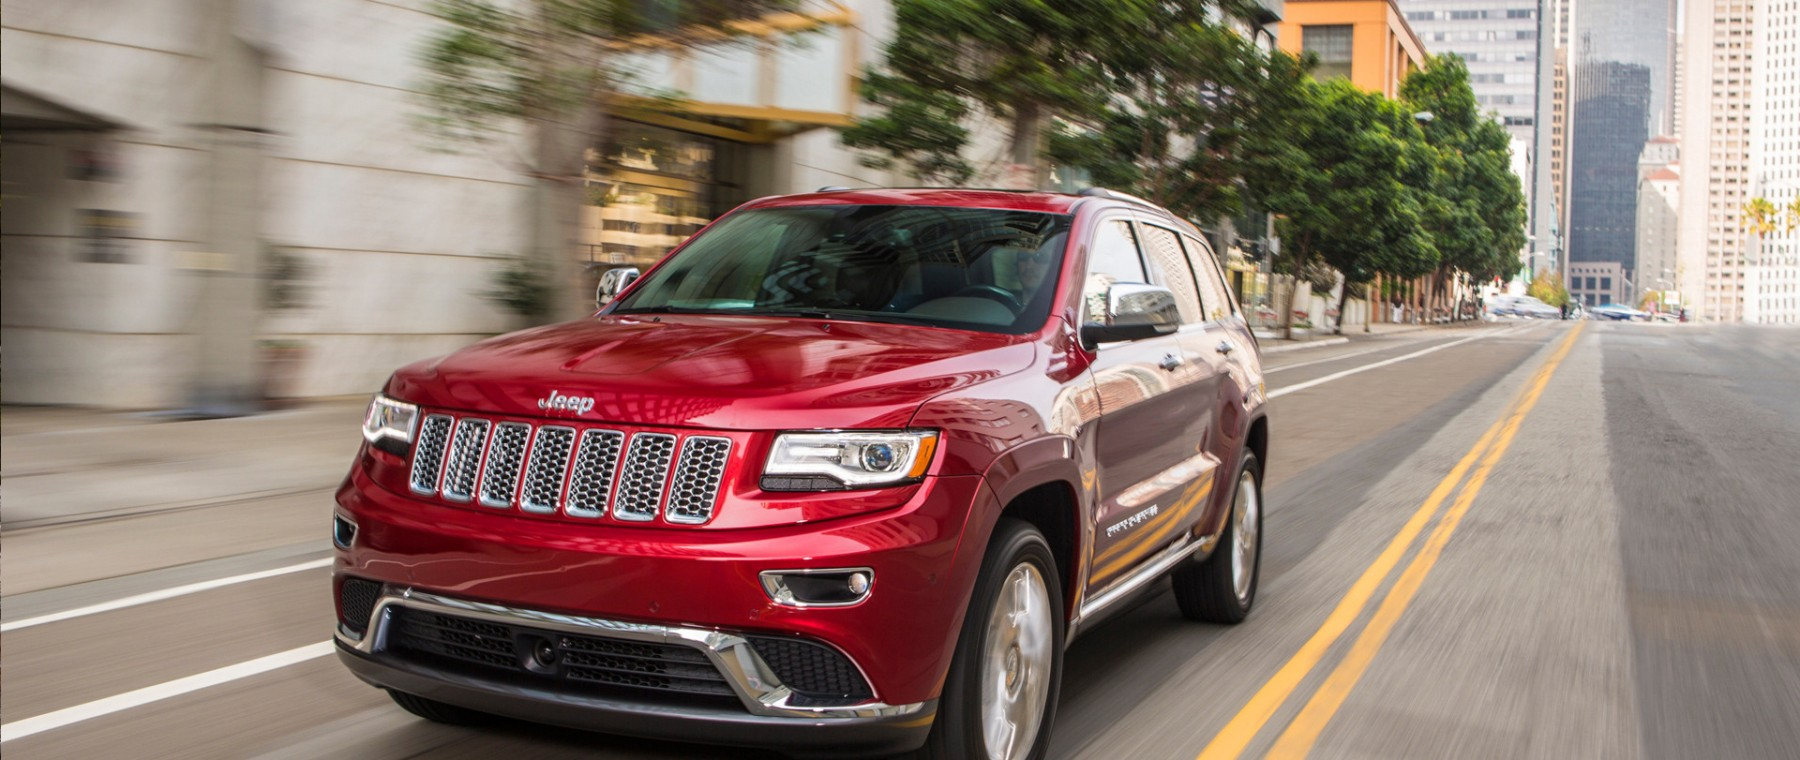 Grand cherokee lease deals detroit